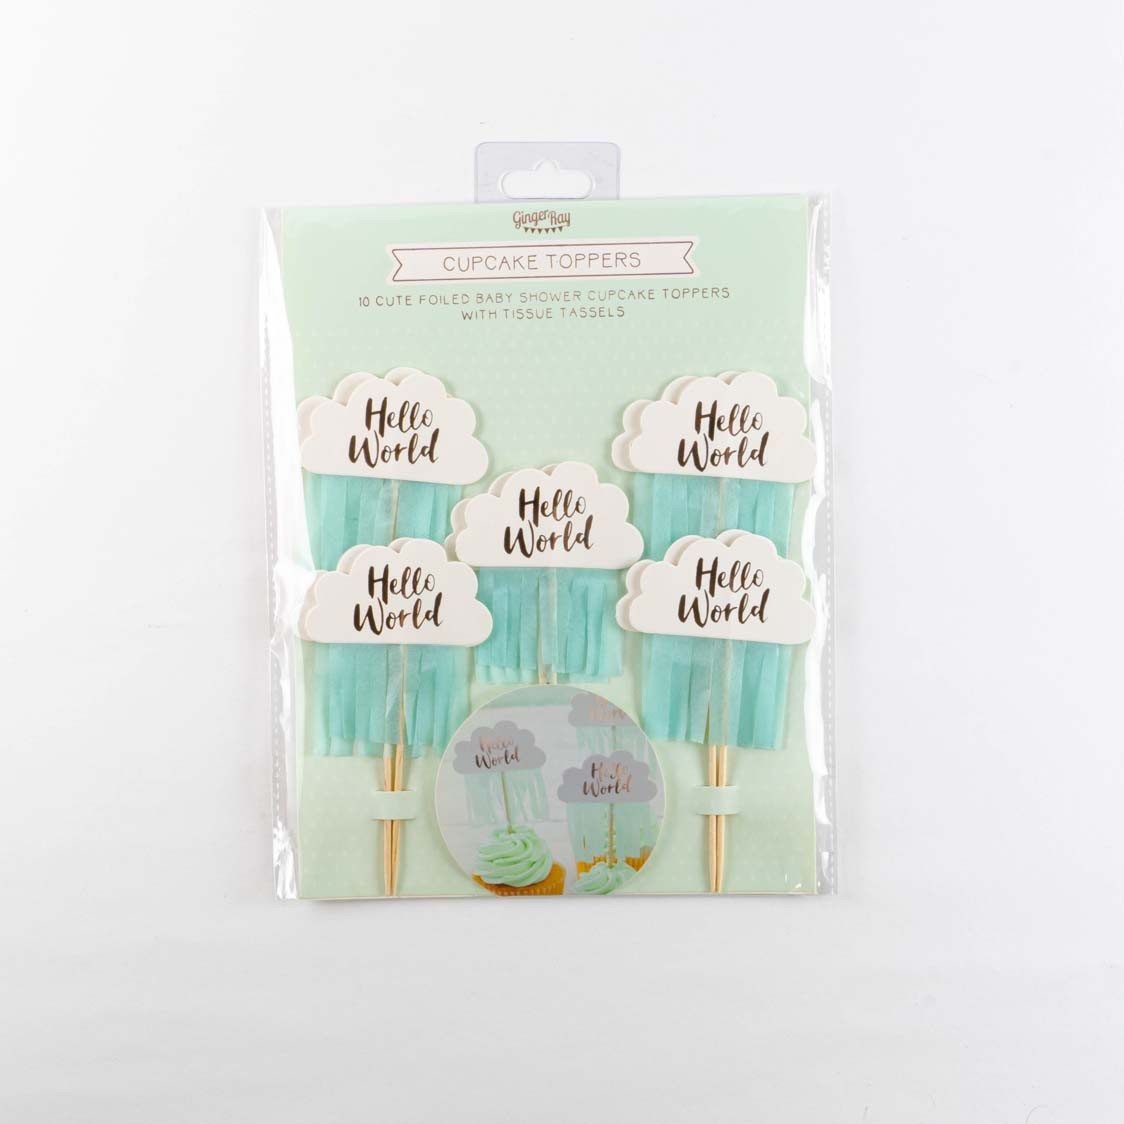 HELLO WORLD BABY SHOWER CAKE TOPPERS